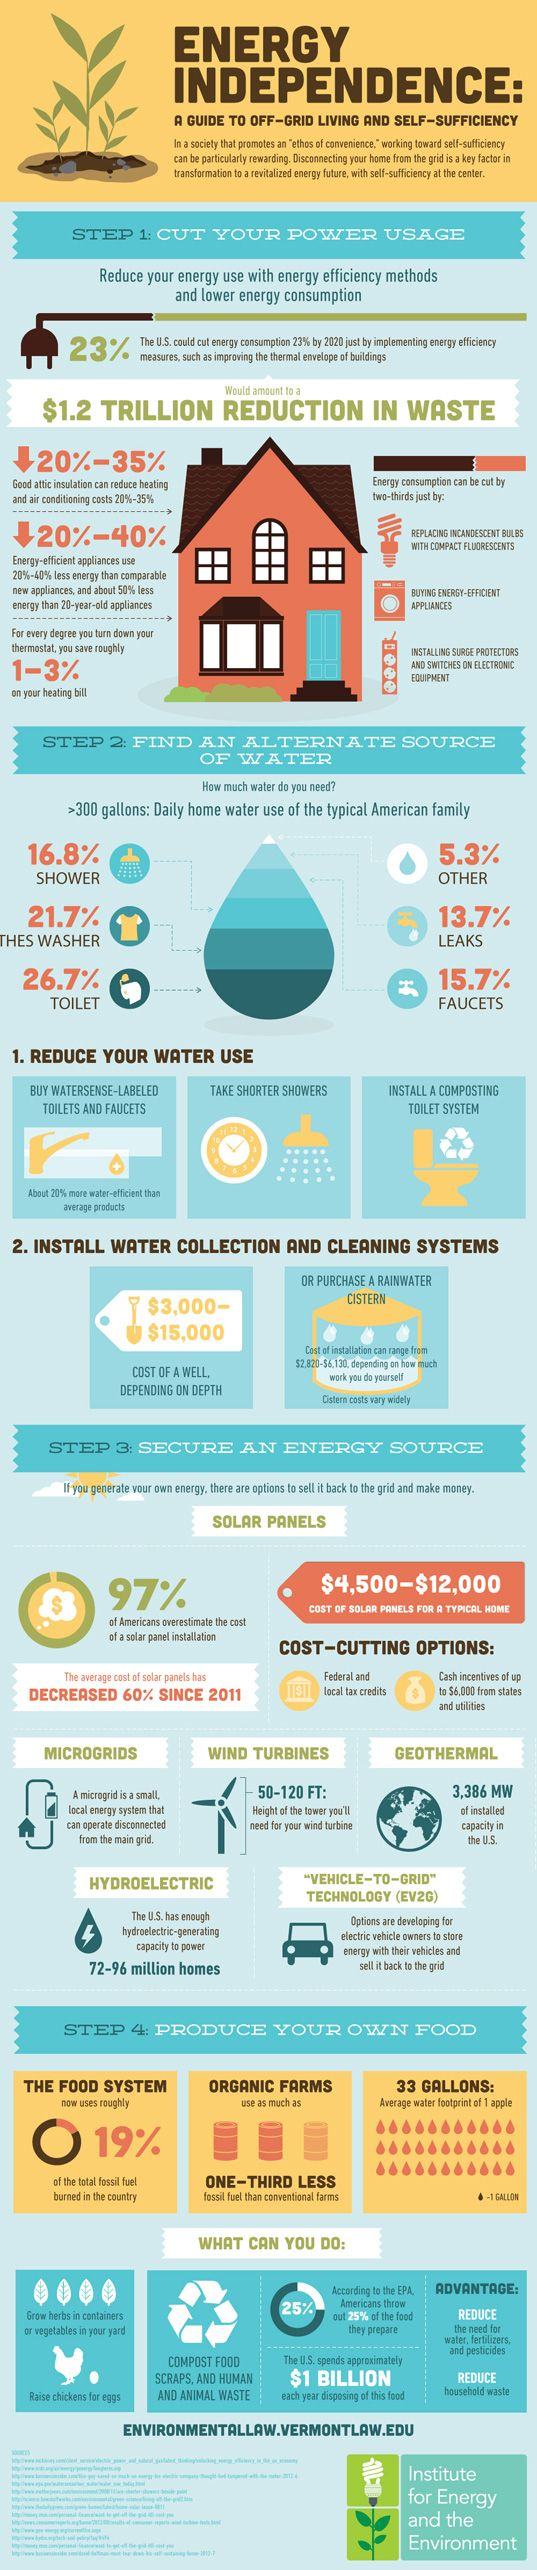 Infographic: How To Achieve Energy Independence Through Off-Grid Living - Inhabitat